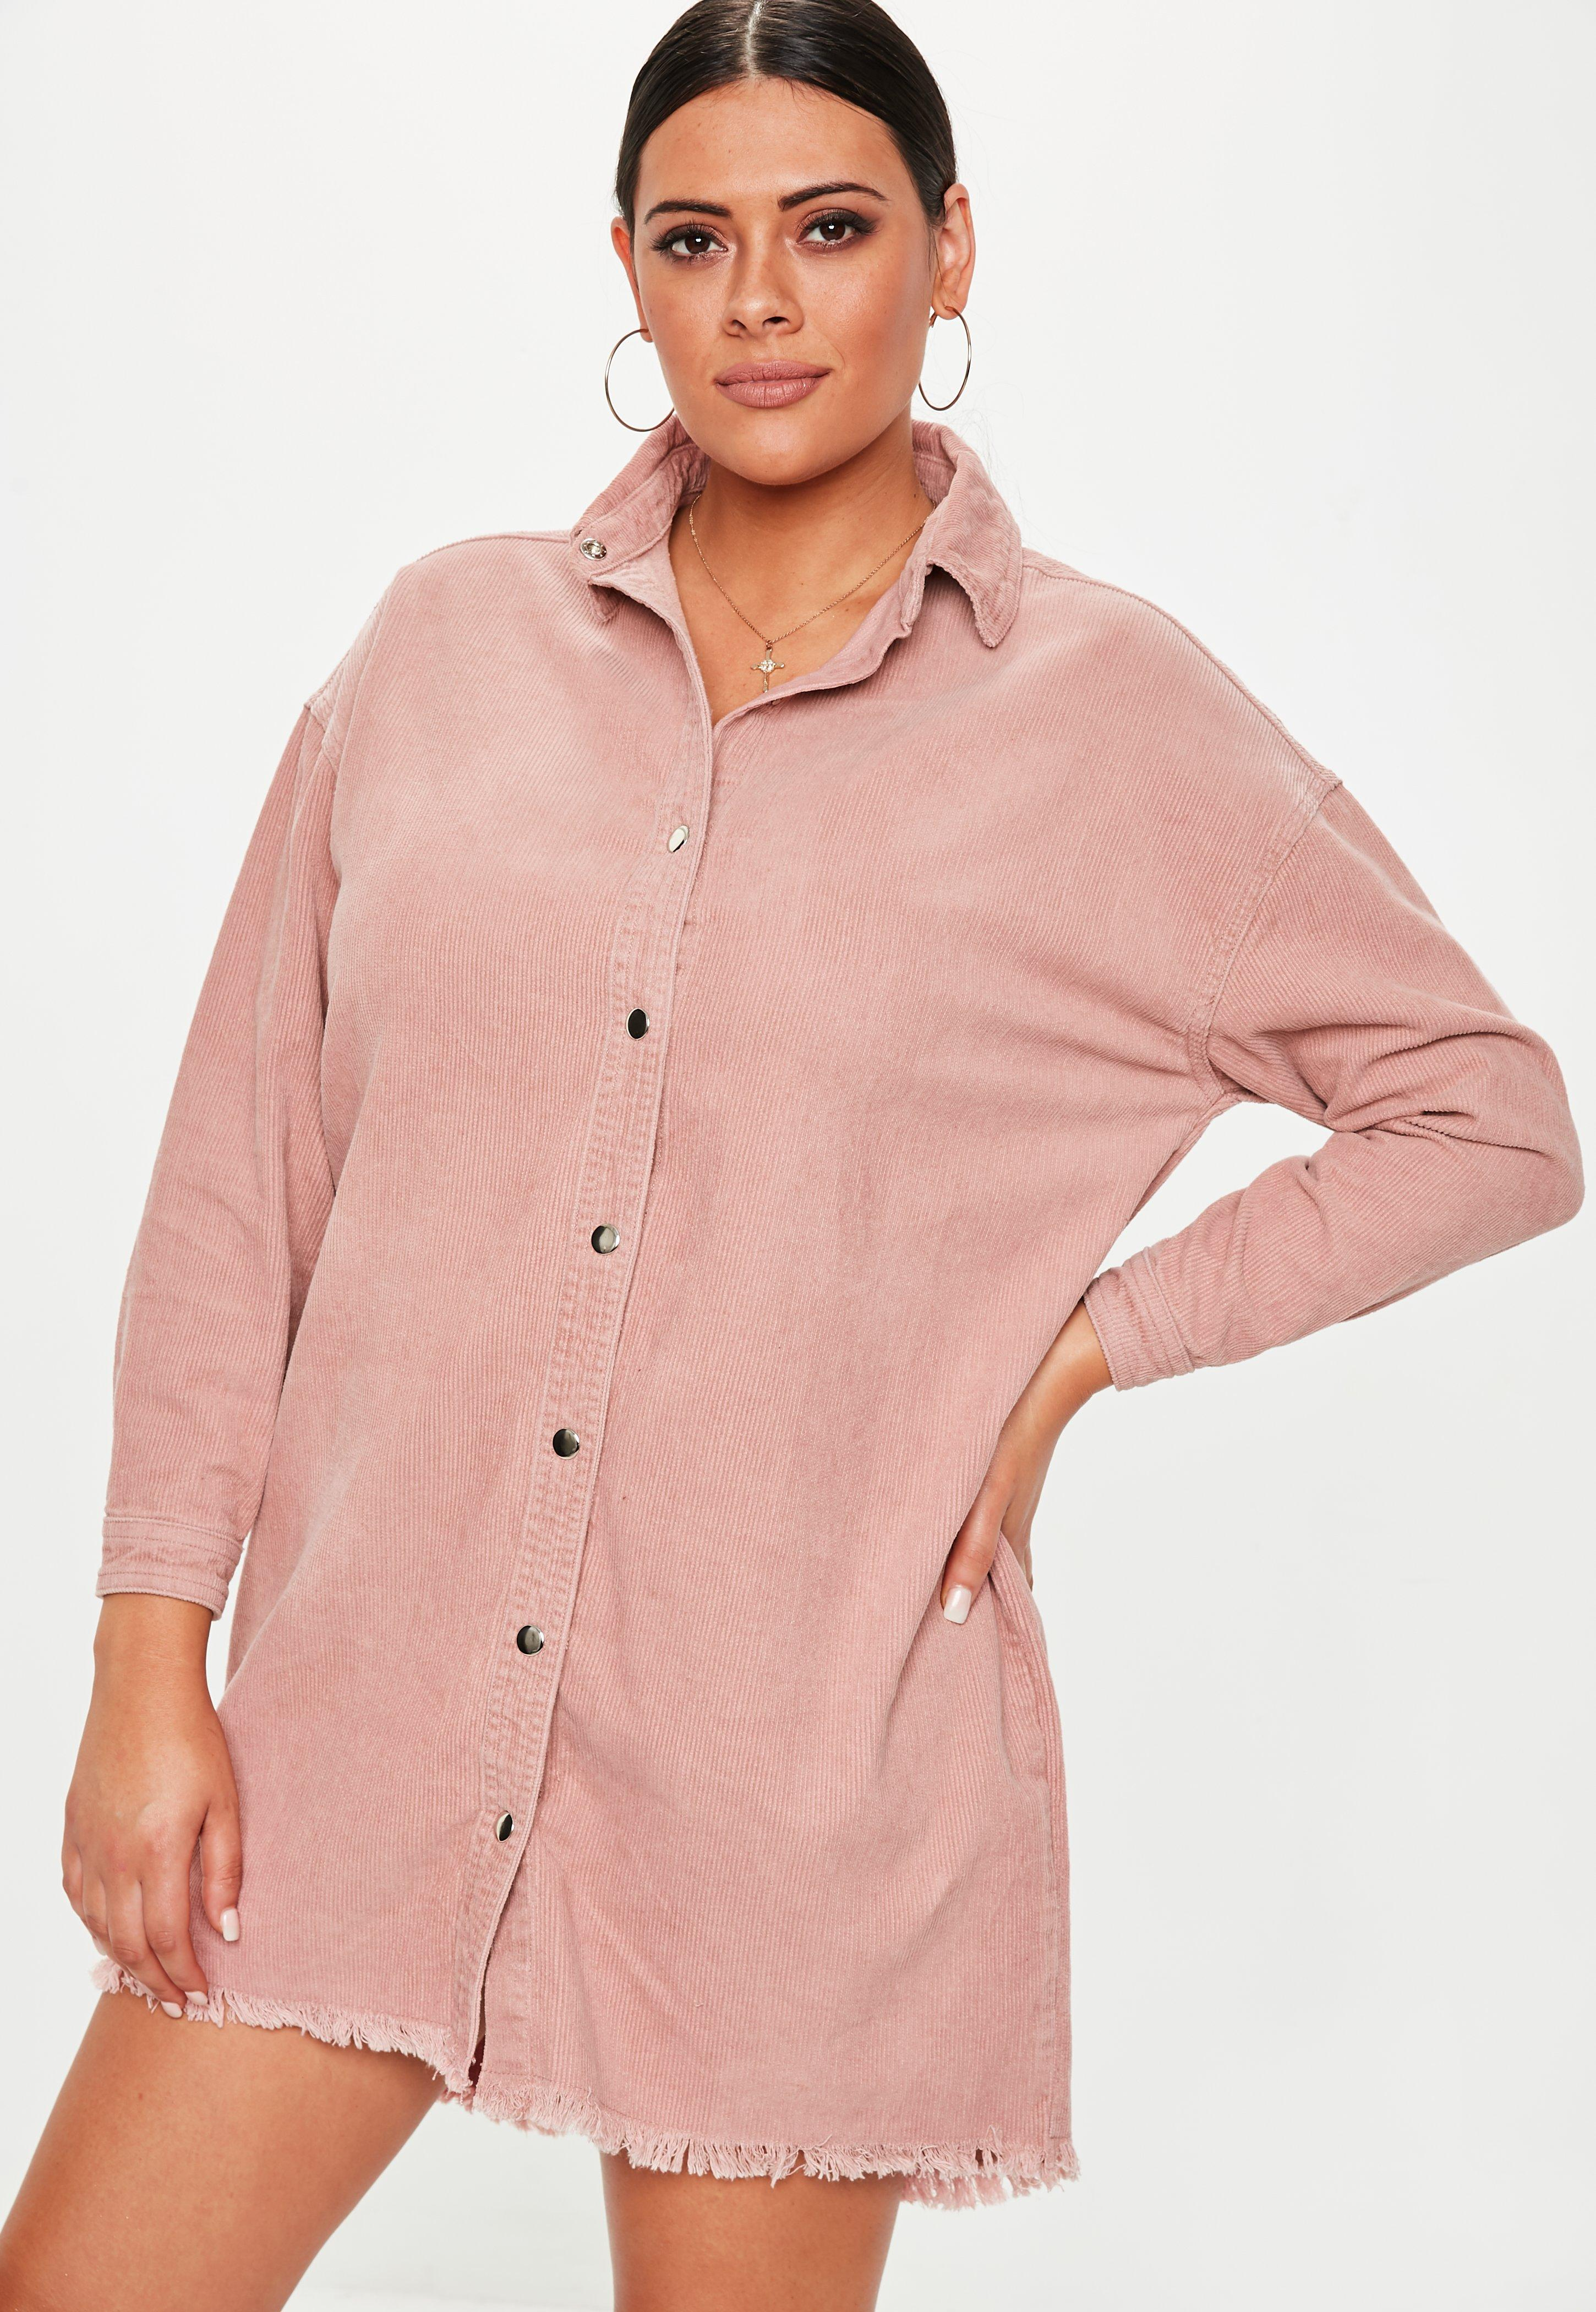 2763a39937b Missguided - Plus Size Dusky Pink Oversized Cord Shirt Dress - Lyst. View  fullscreen